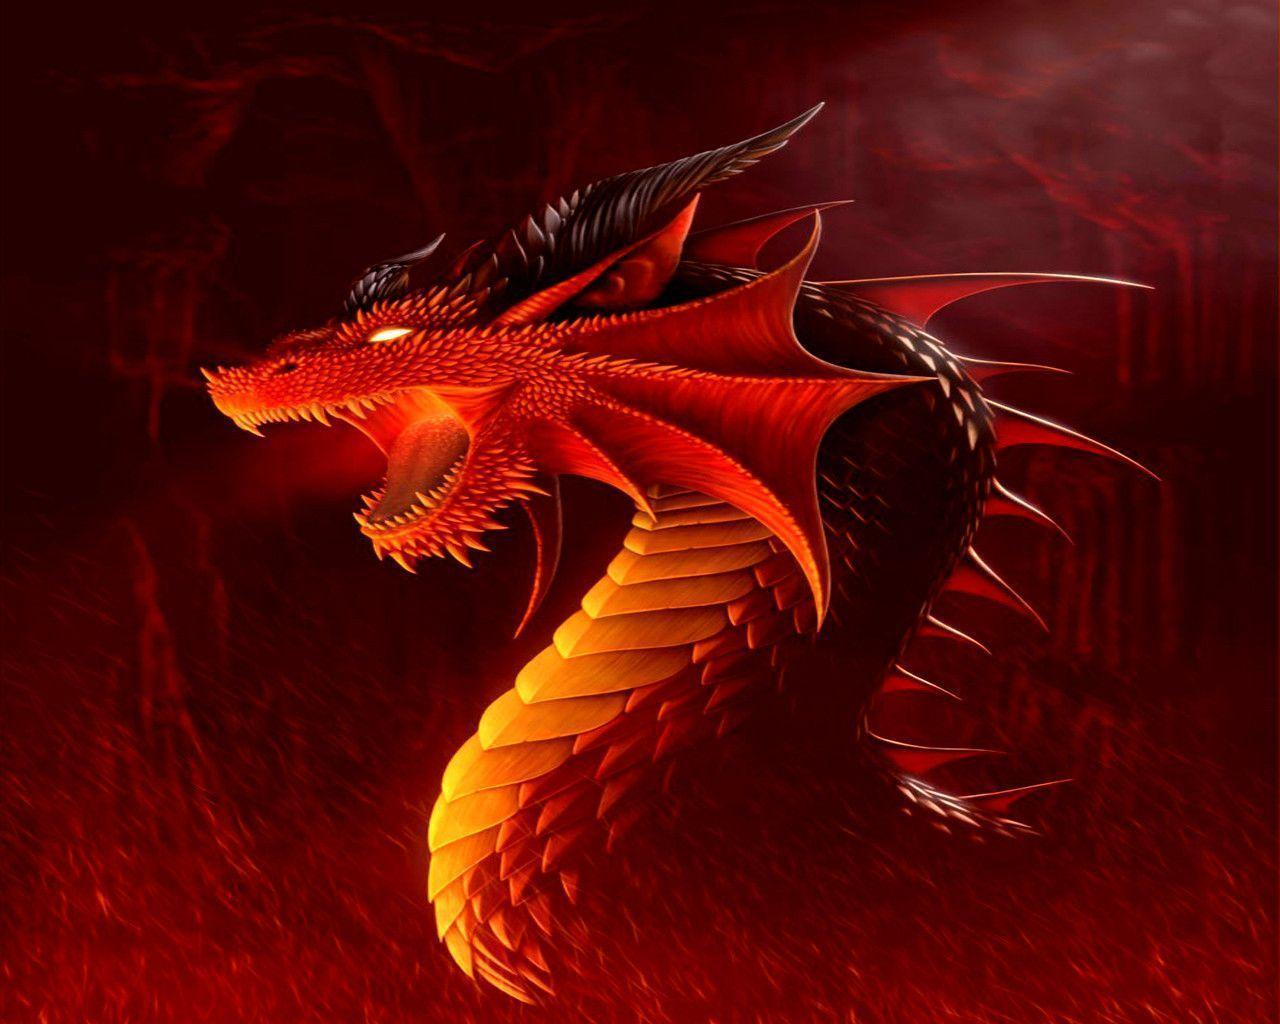 red dragons wallpaper - photo #17